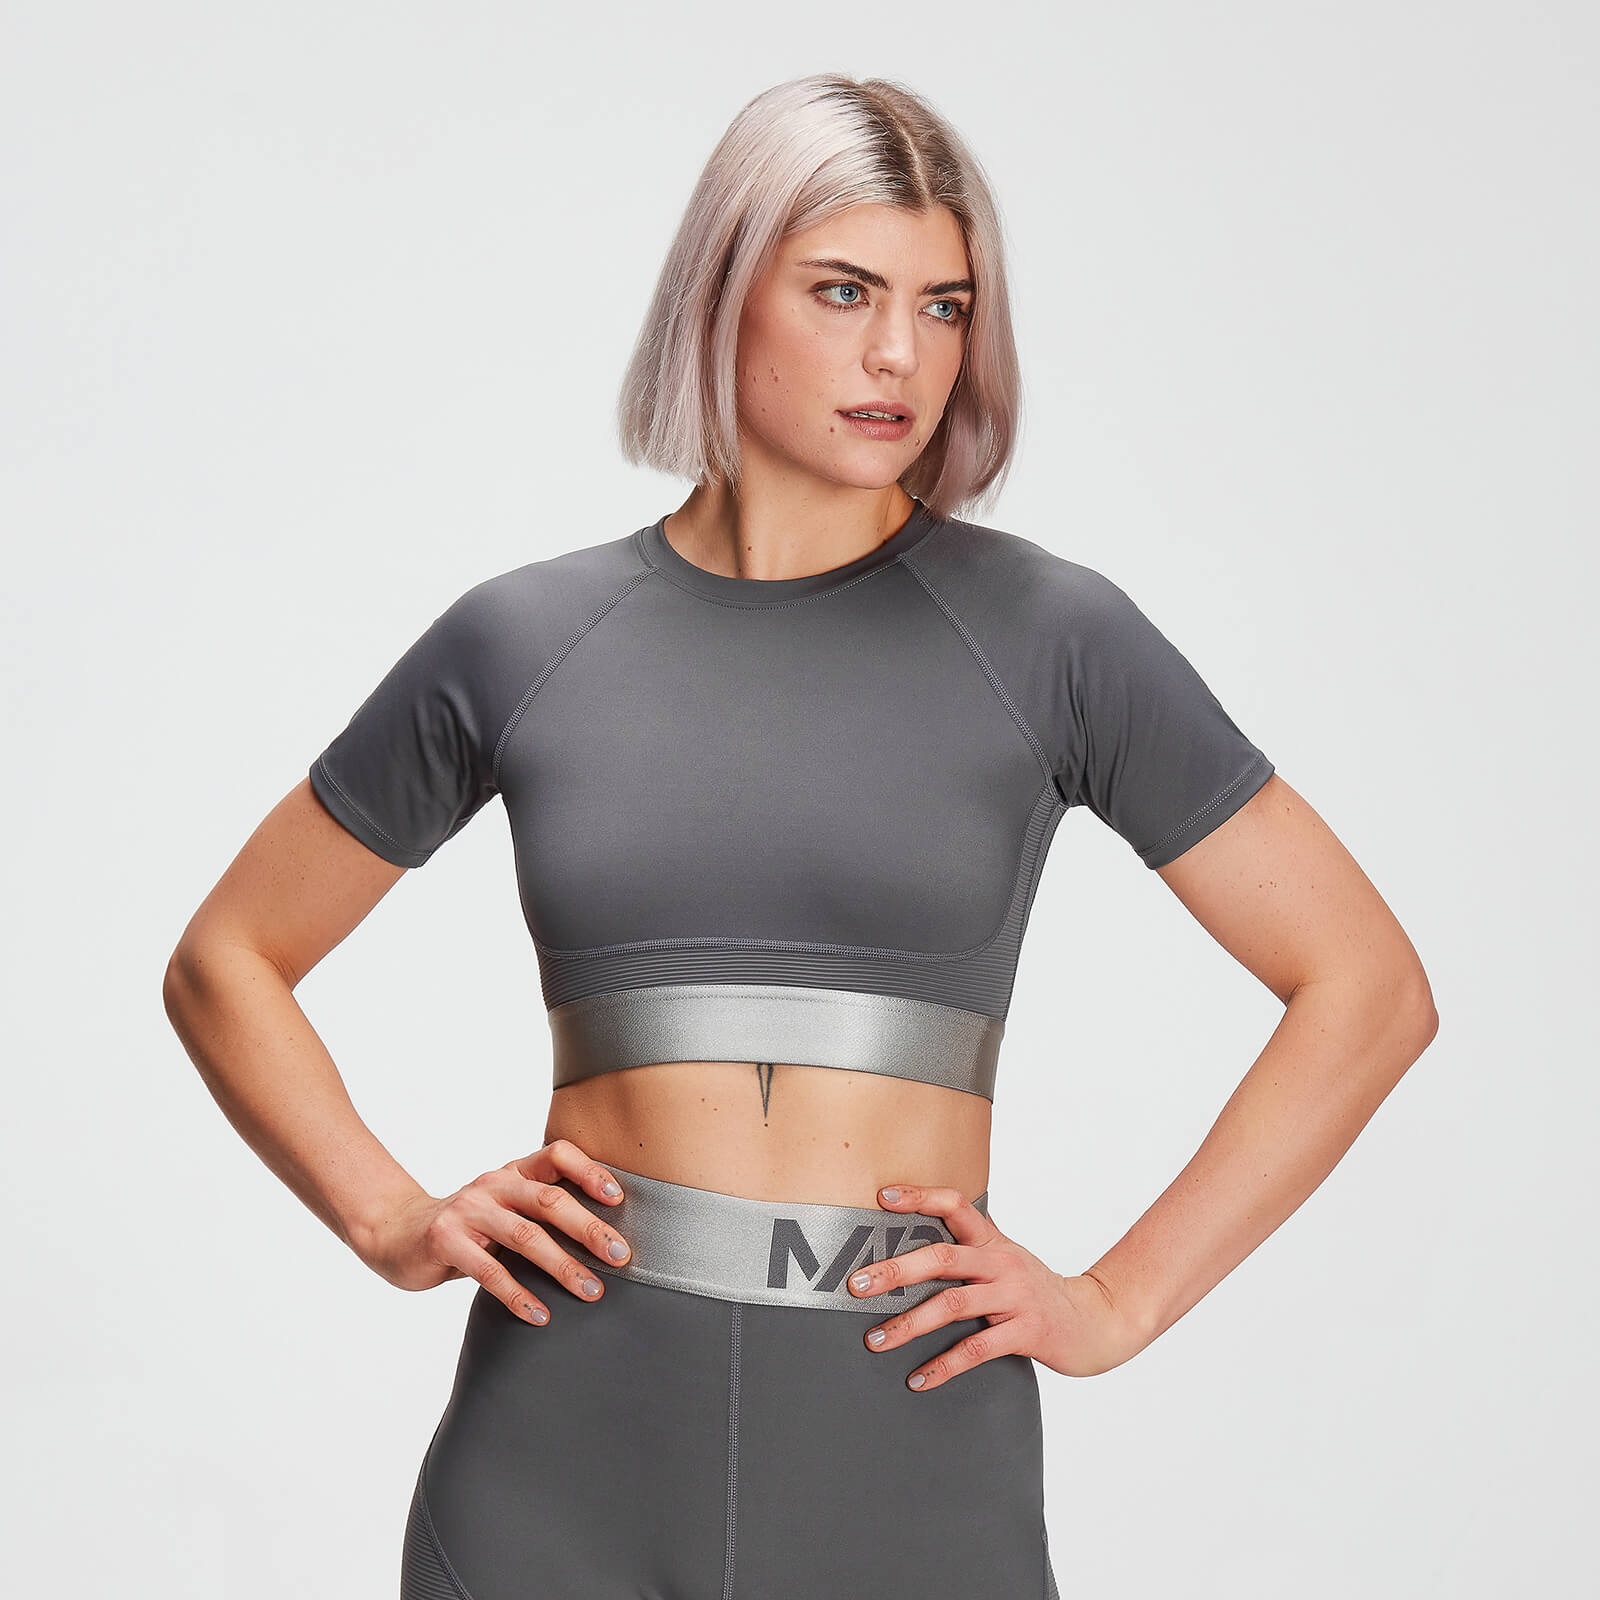 Crop top texturé MP Adapt pour femmes – Carbone - L